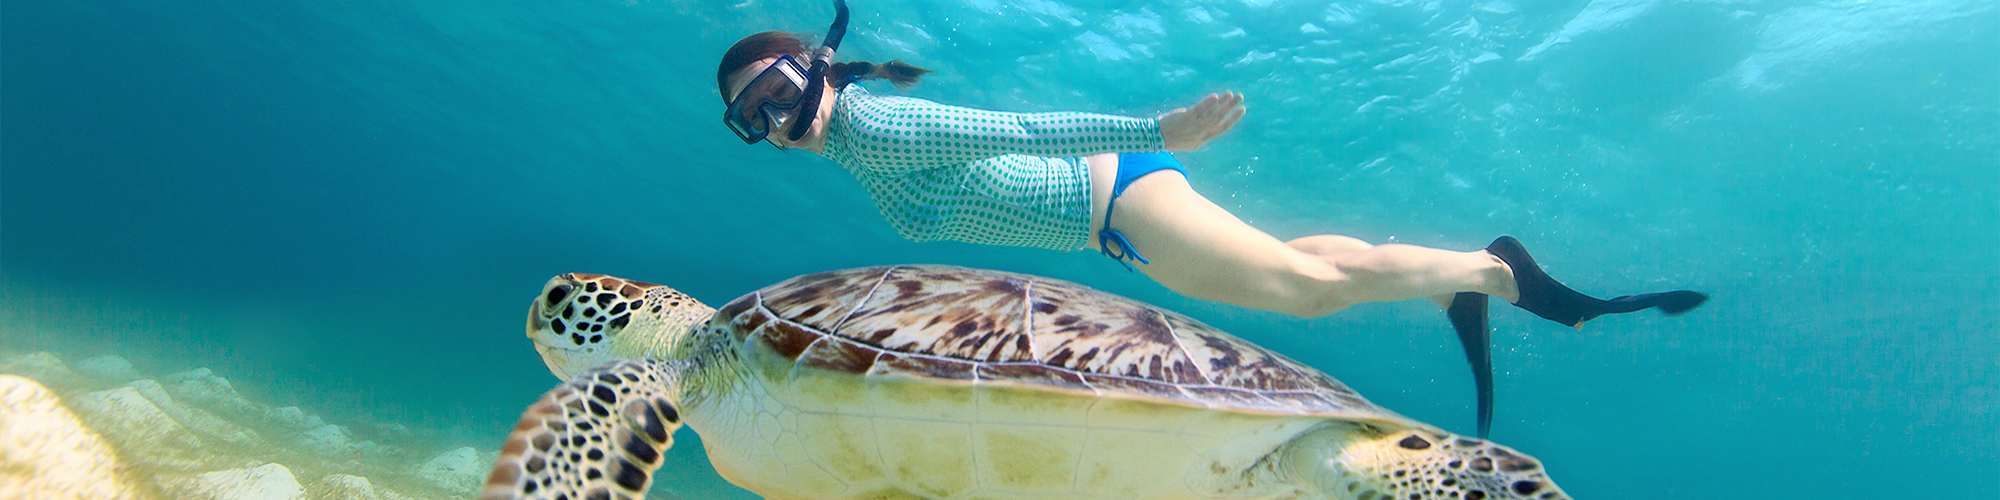 Hurghada Snorkeling Trips - Tours From Hurghada